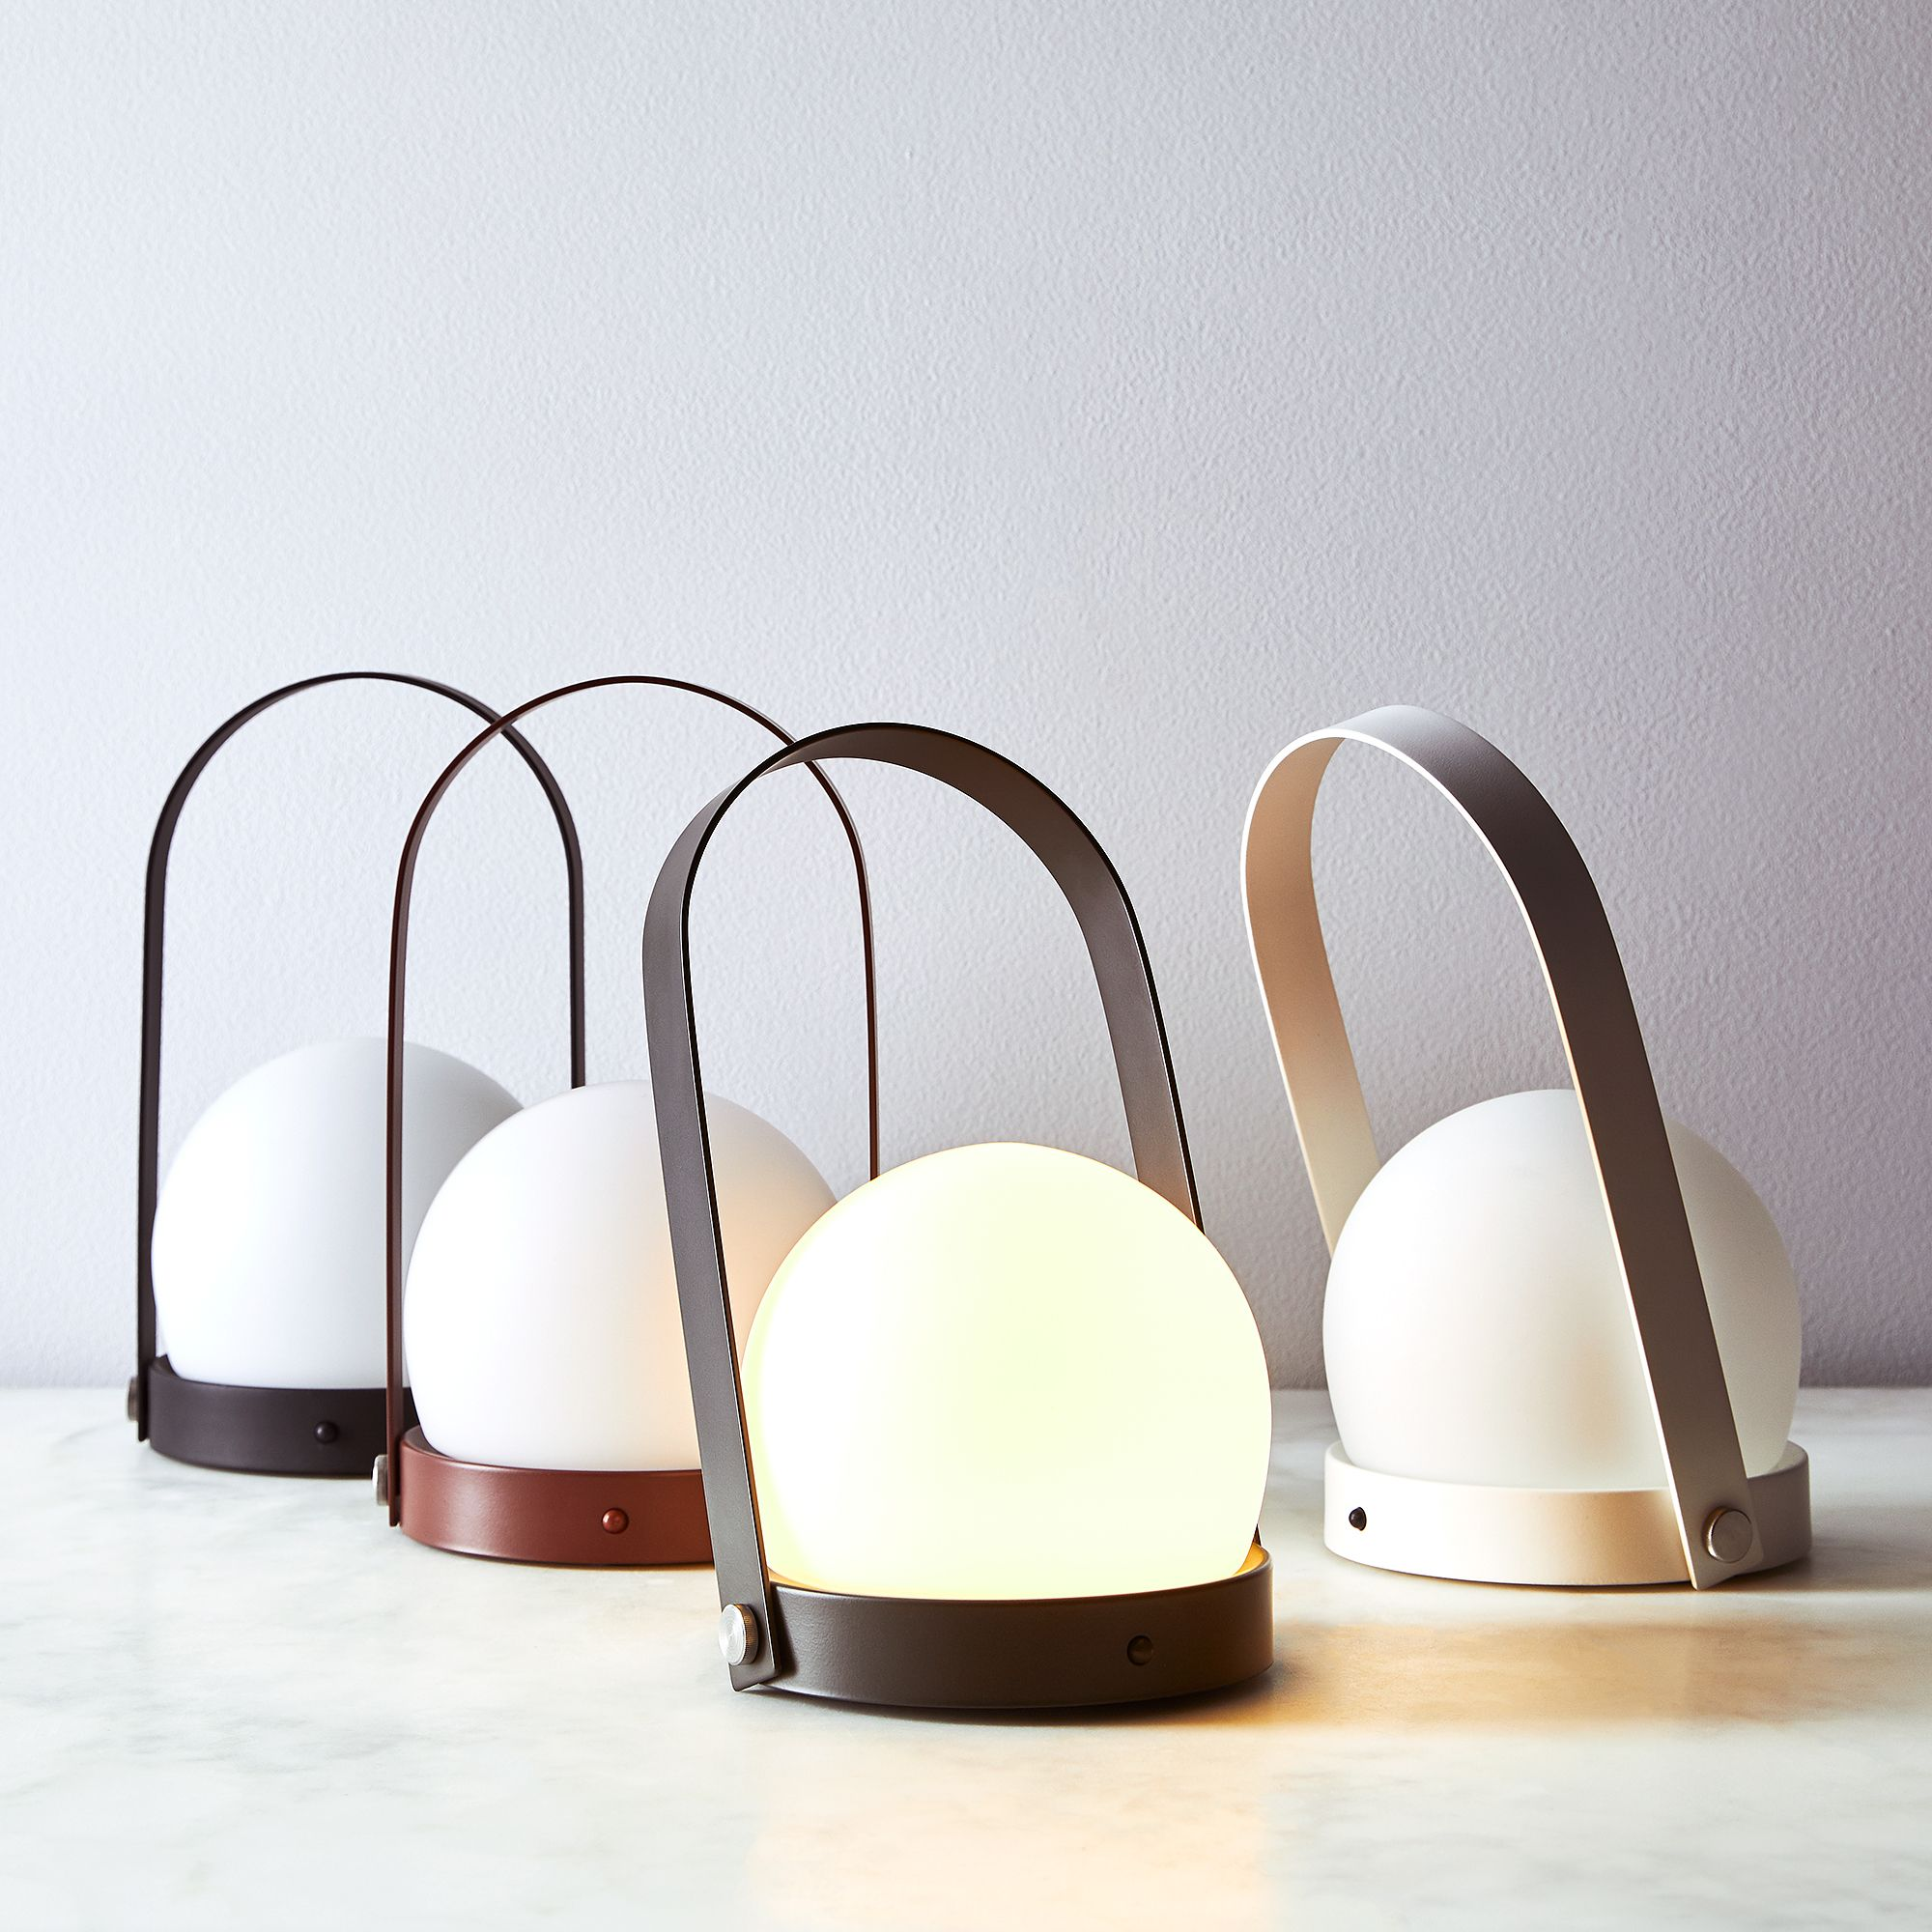 GIfts for Couples: Modern Rechargeable LED Lantern